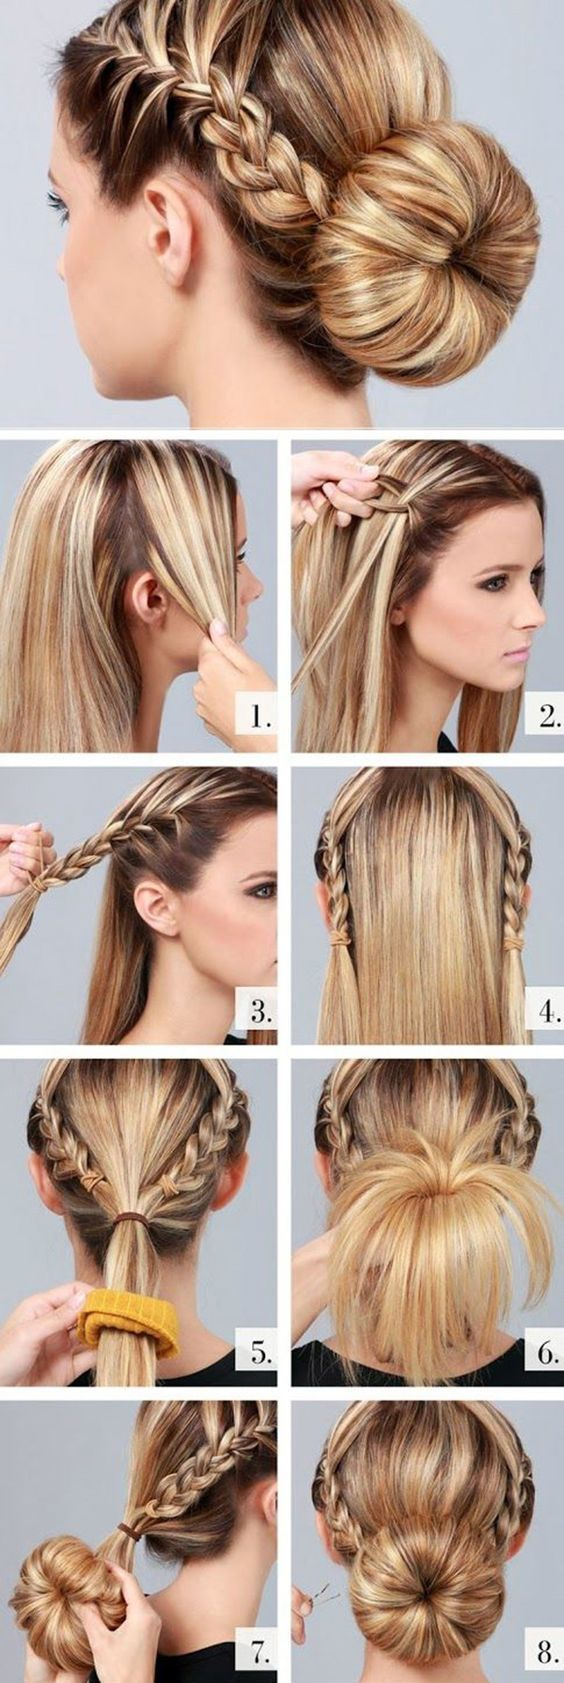 the 25+ best different types of hairstyles ideas on pinterest